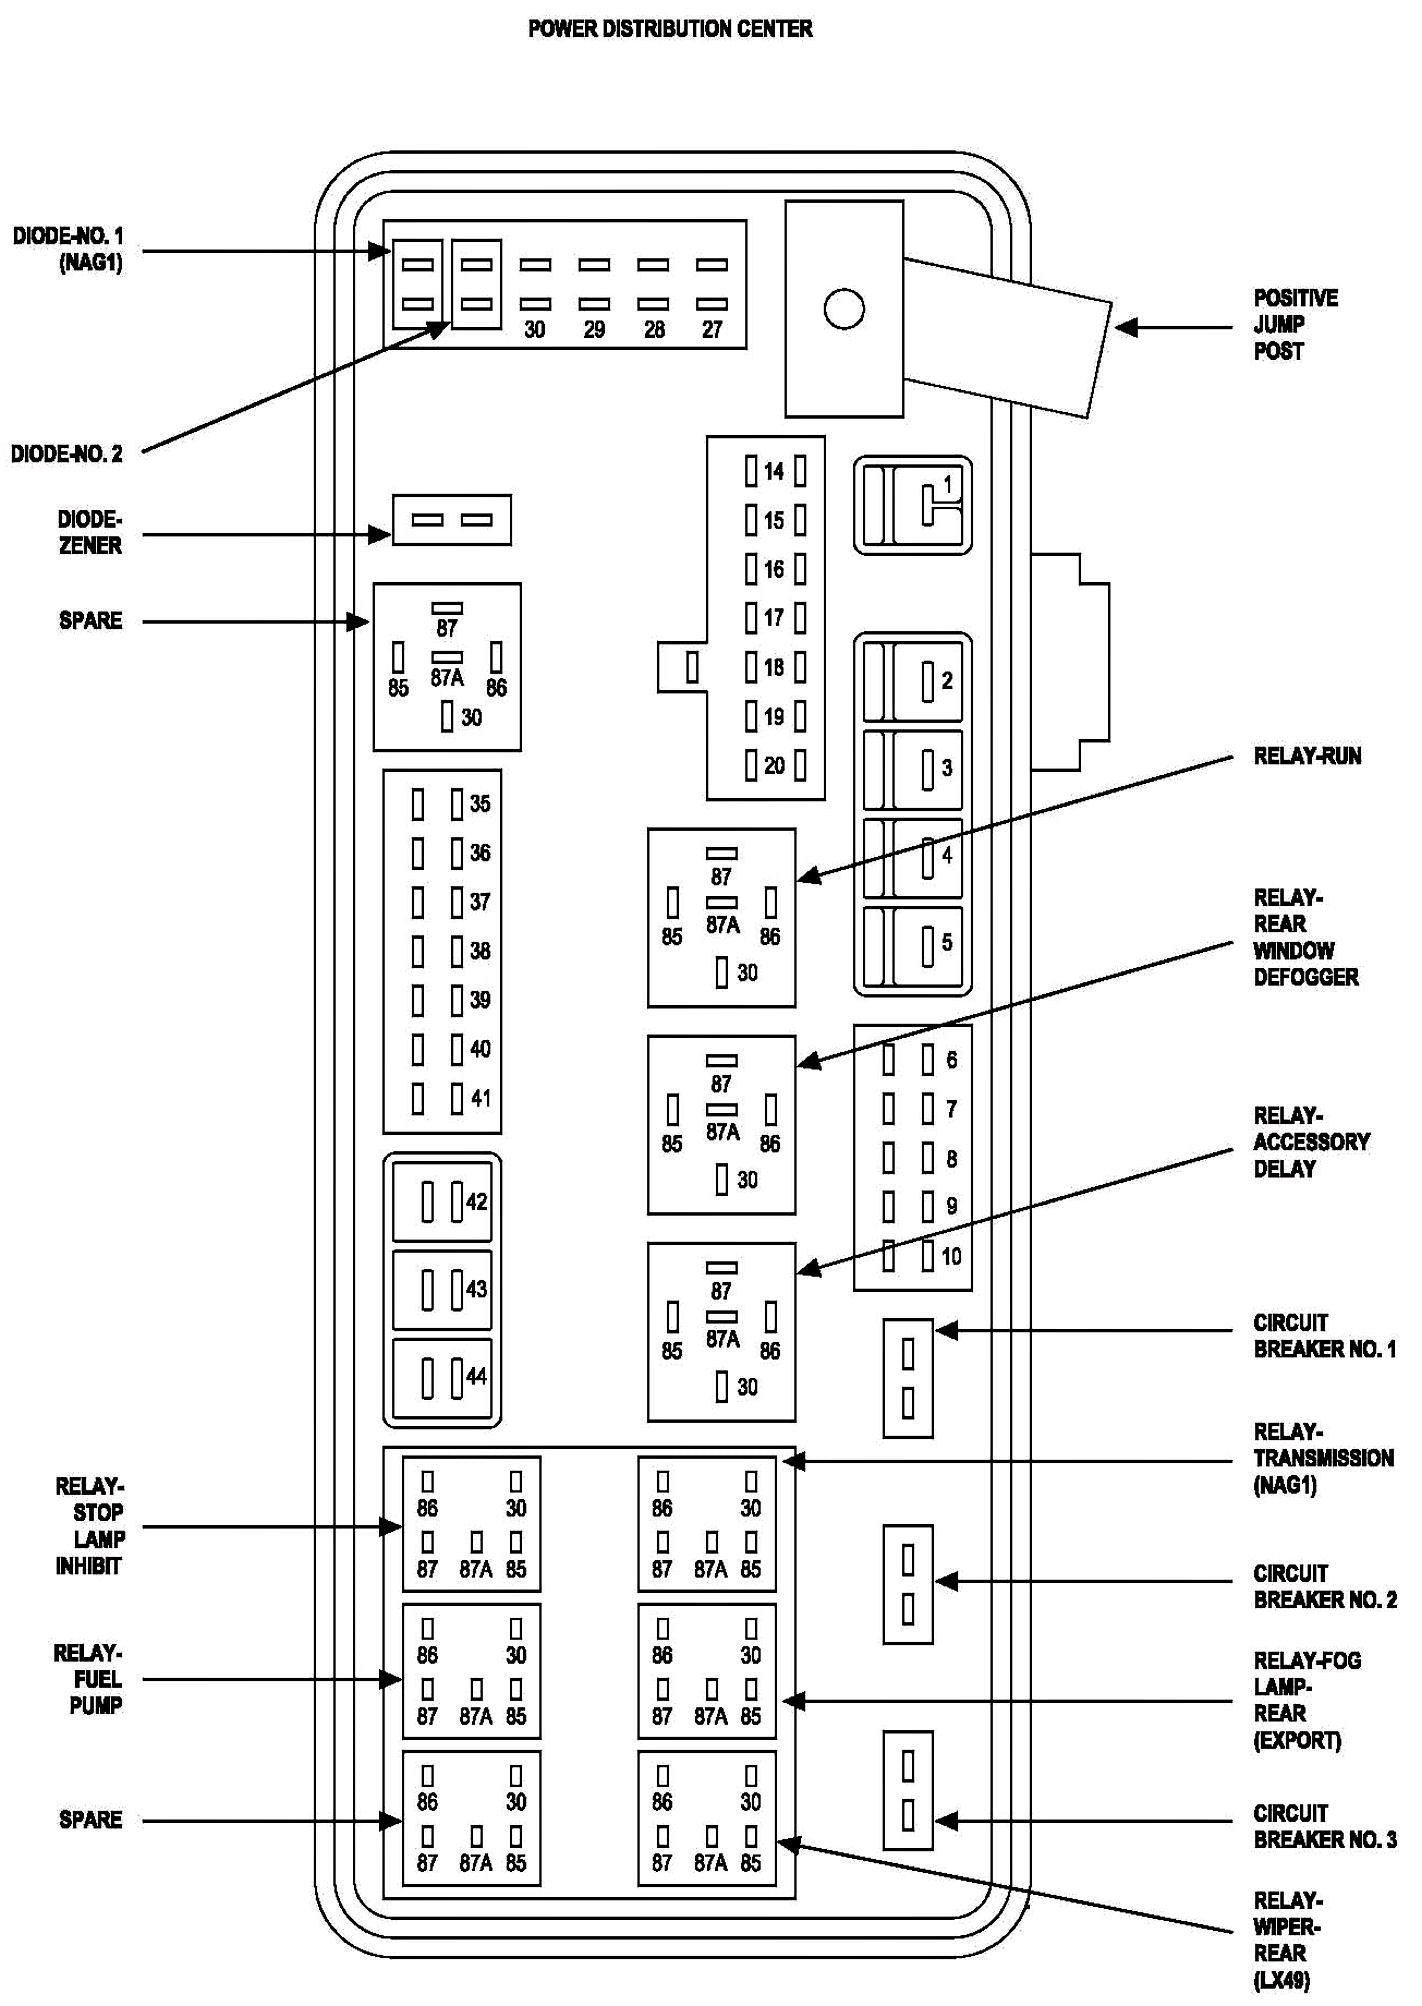 fuse box on a 2008 chrysler 300 location wiring diagram cigarette light 2005 chrysler 300 fuse box diagram 2008 chrysler 300 fuse box location